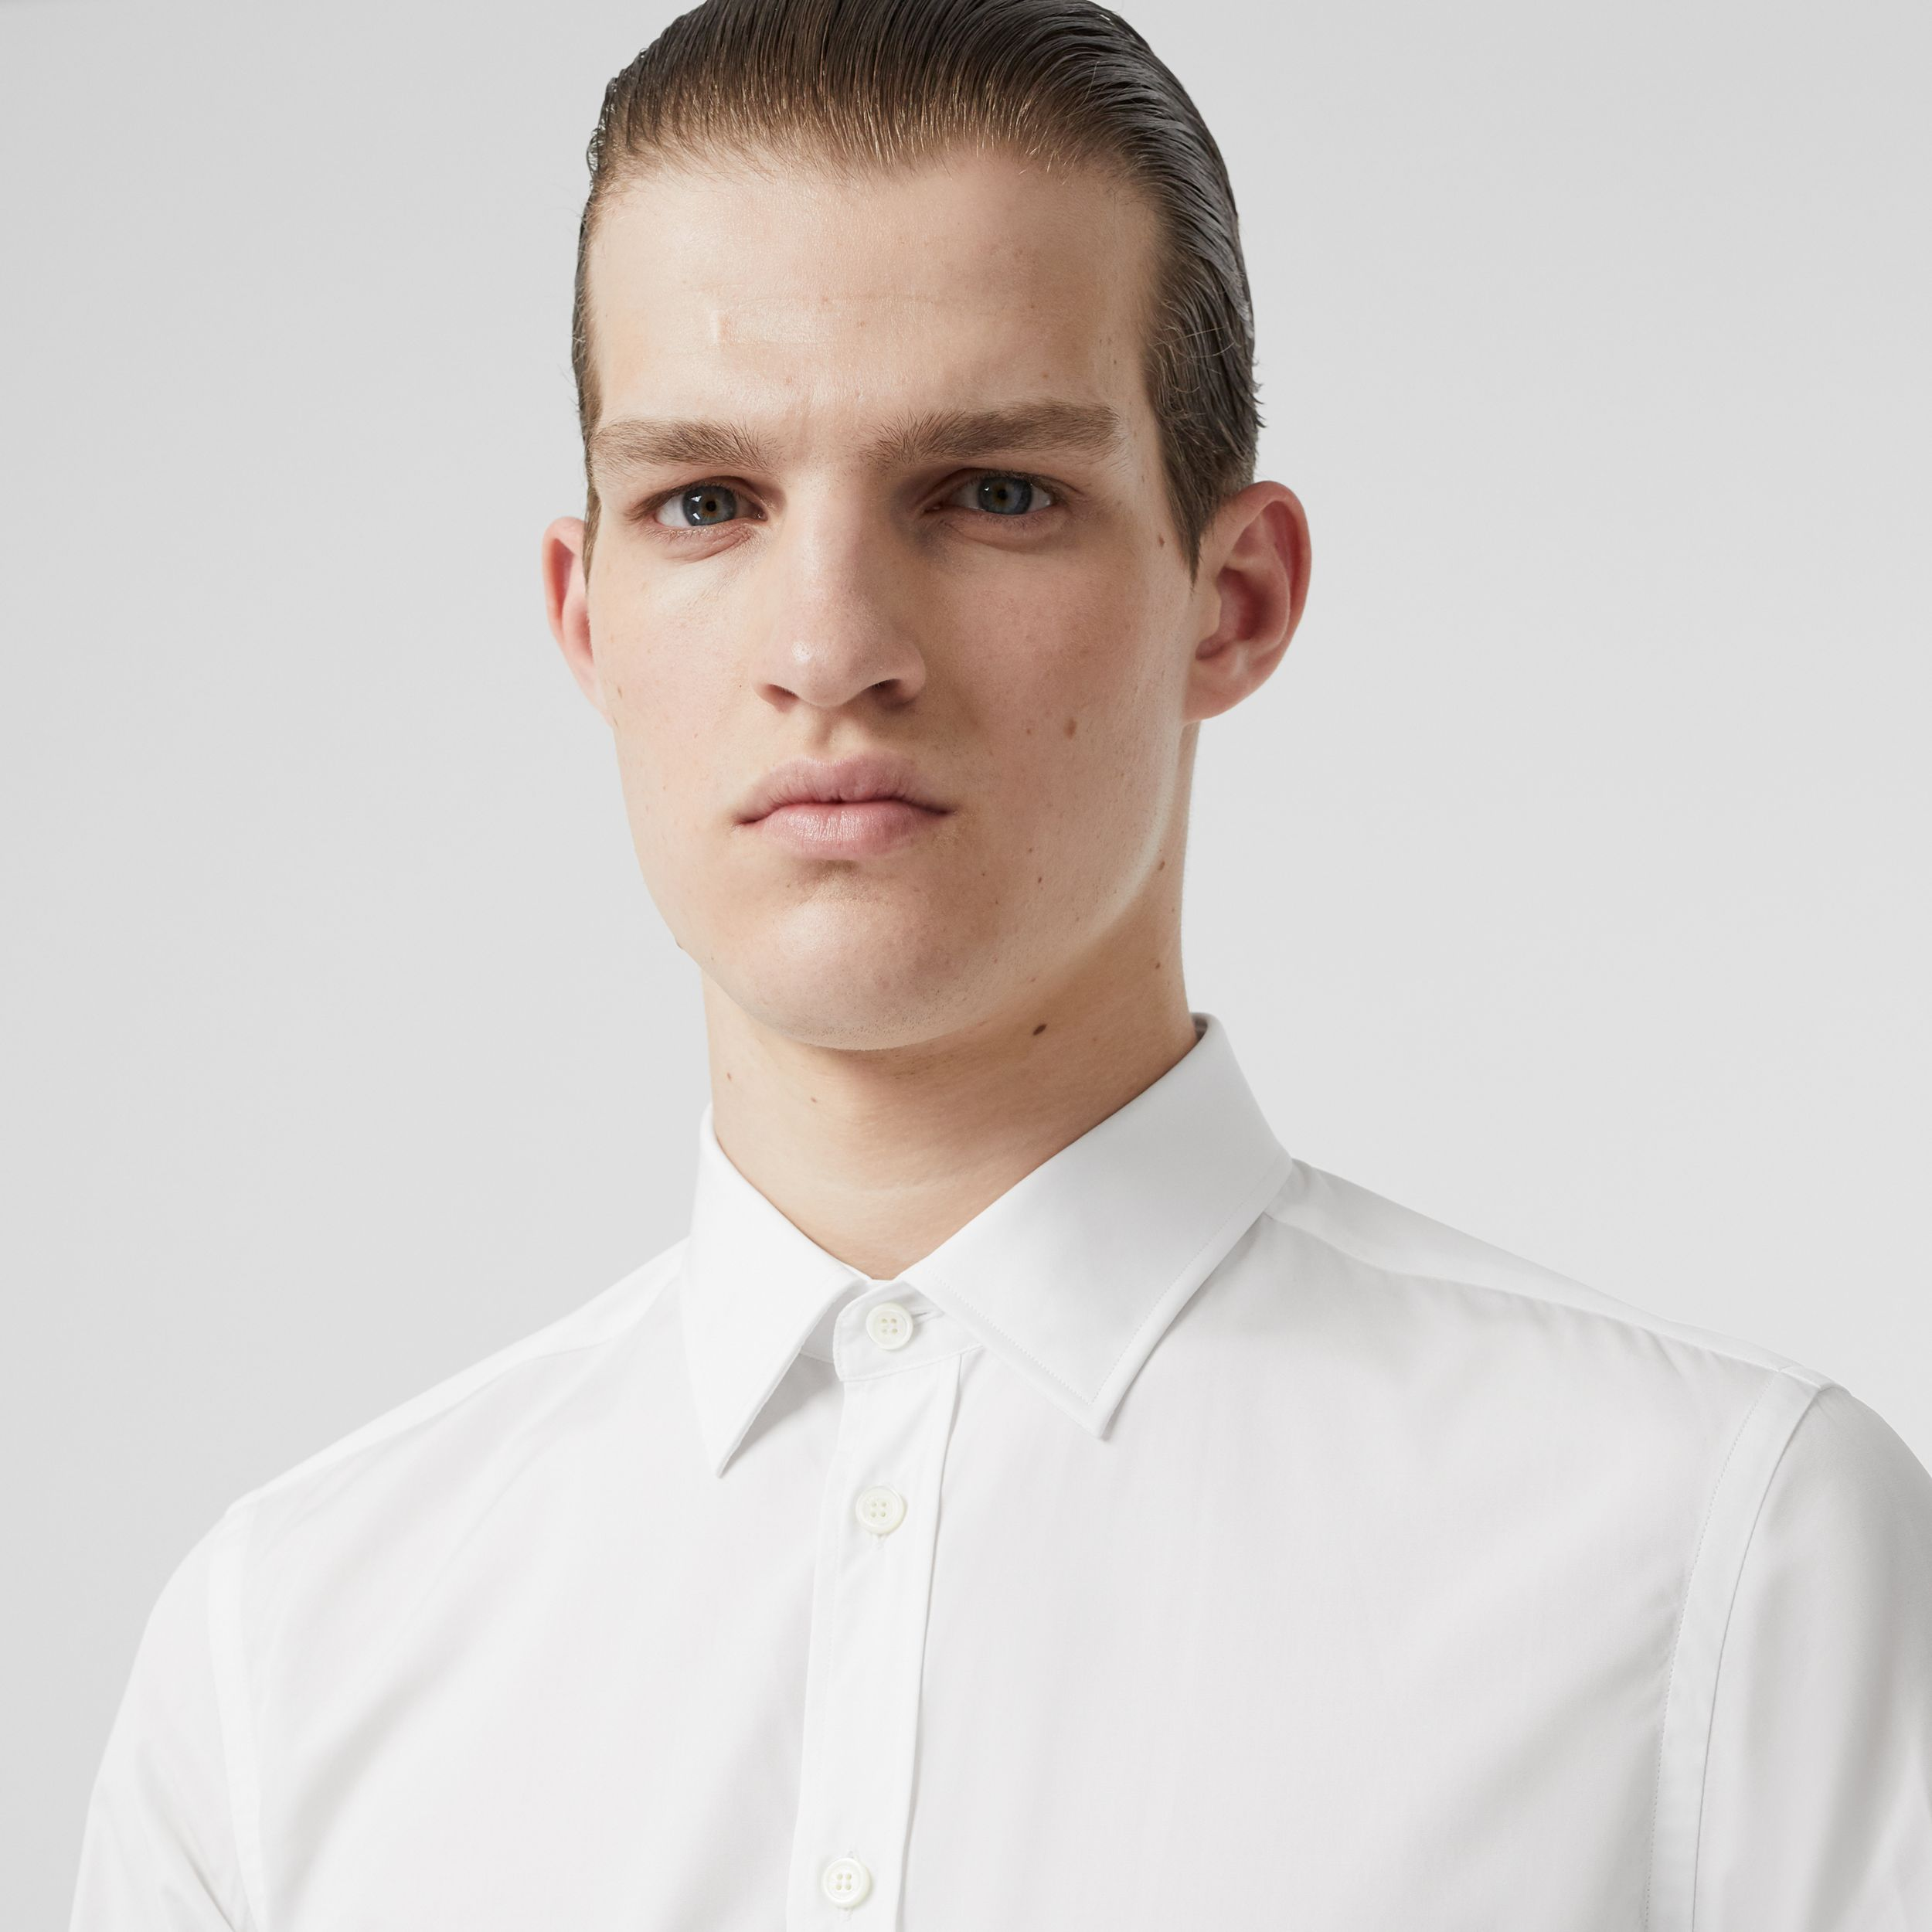 Slim Fit Monogram Motif Cotton Poplin Shirt in White - Men | Burberry - 2